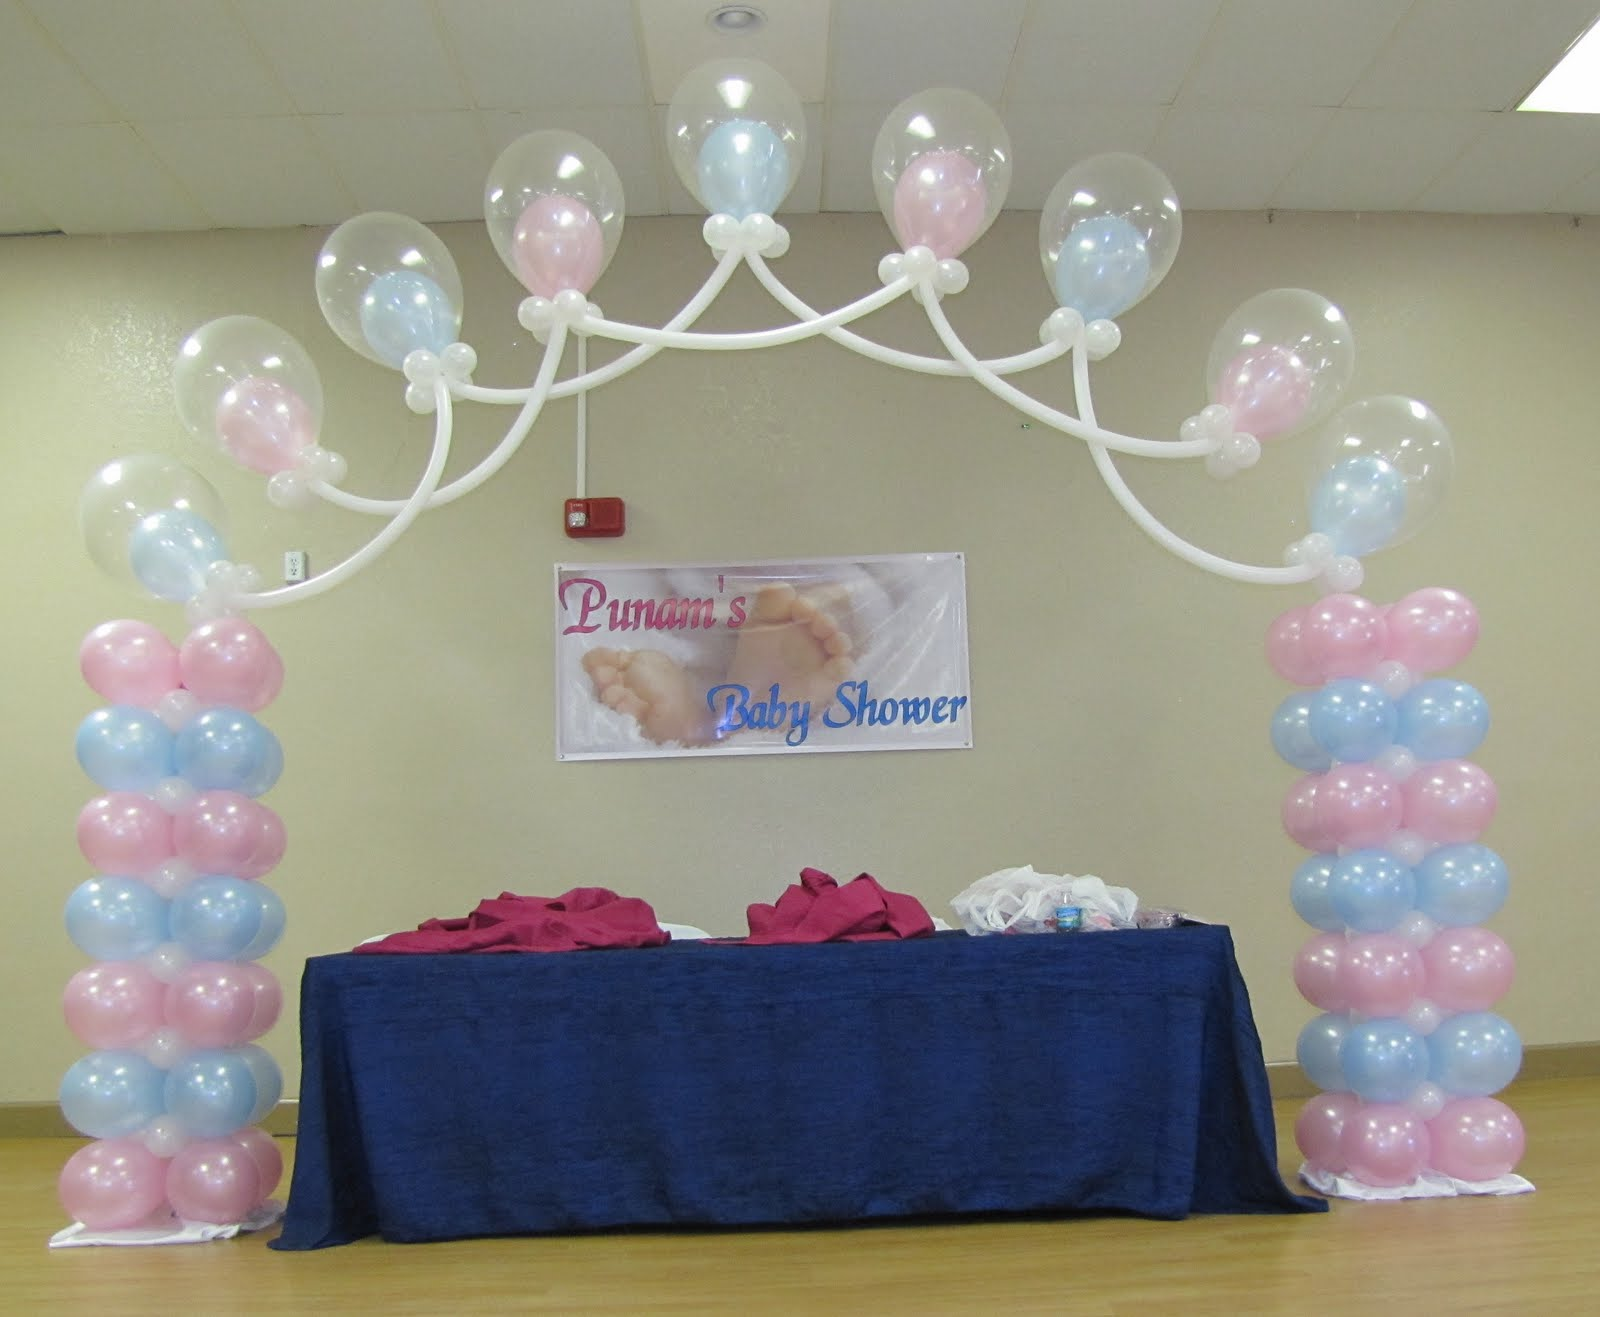 Party people event decorating company baby shower ocala fl for Baby showers pictures for decoration